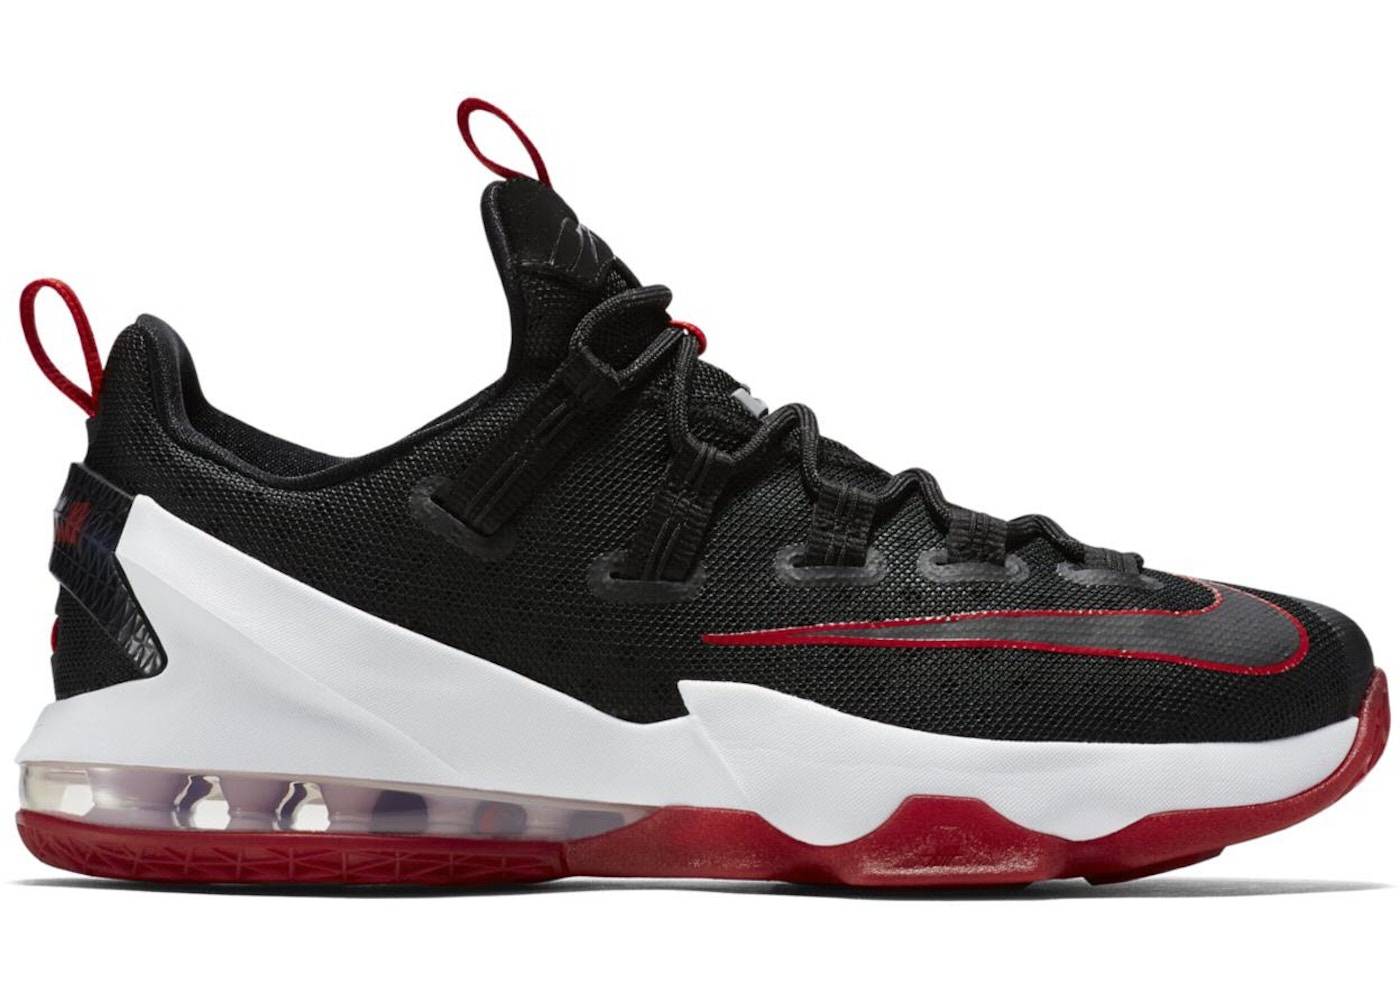 on sale e9045 aedd5 LeBron 13 Low Black Red - 831926-061